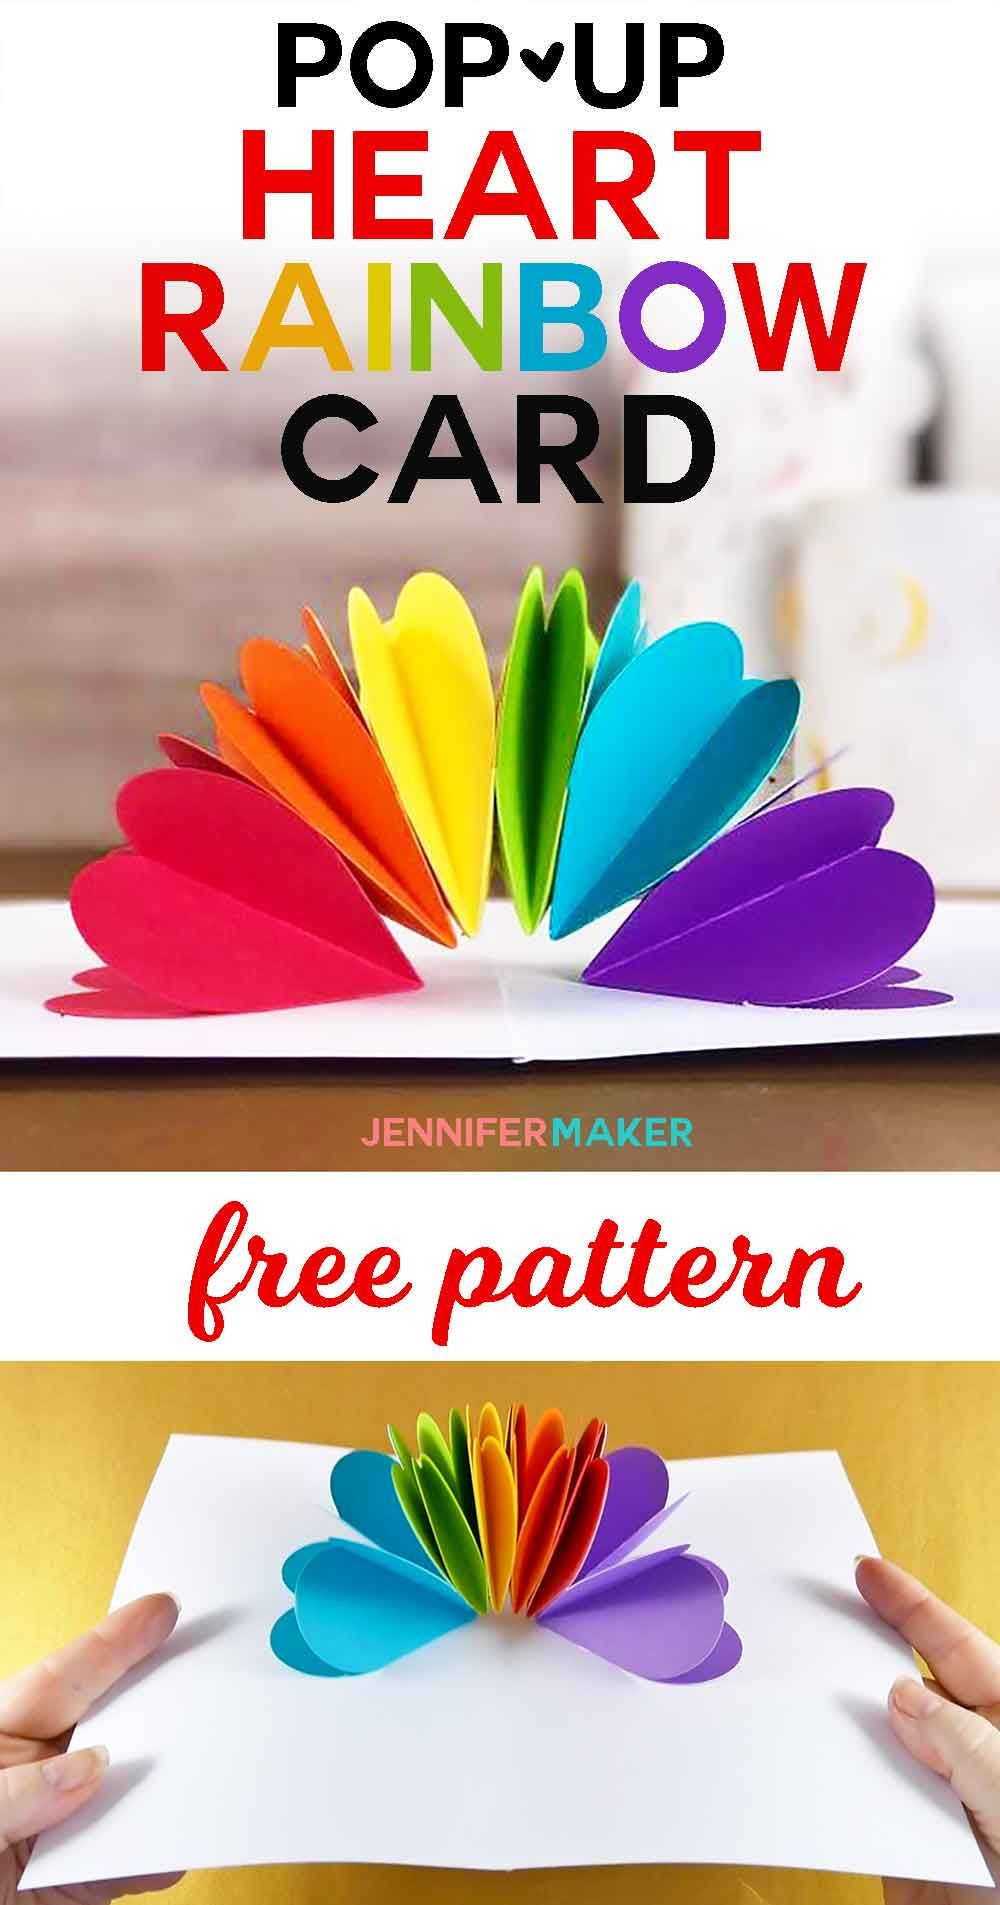 Make a popup heart rainbow card papercraft cricut and free pattern